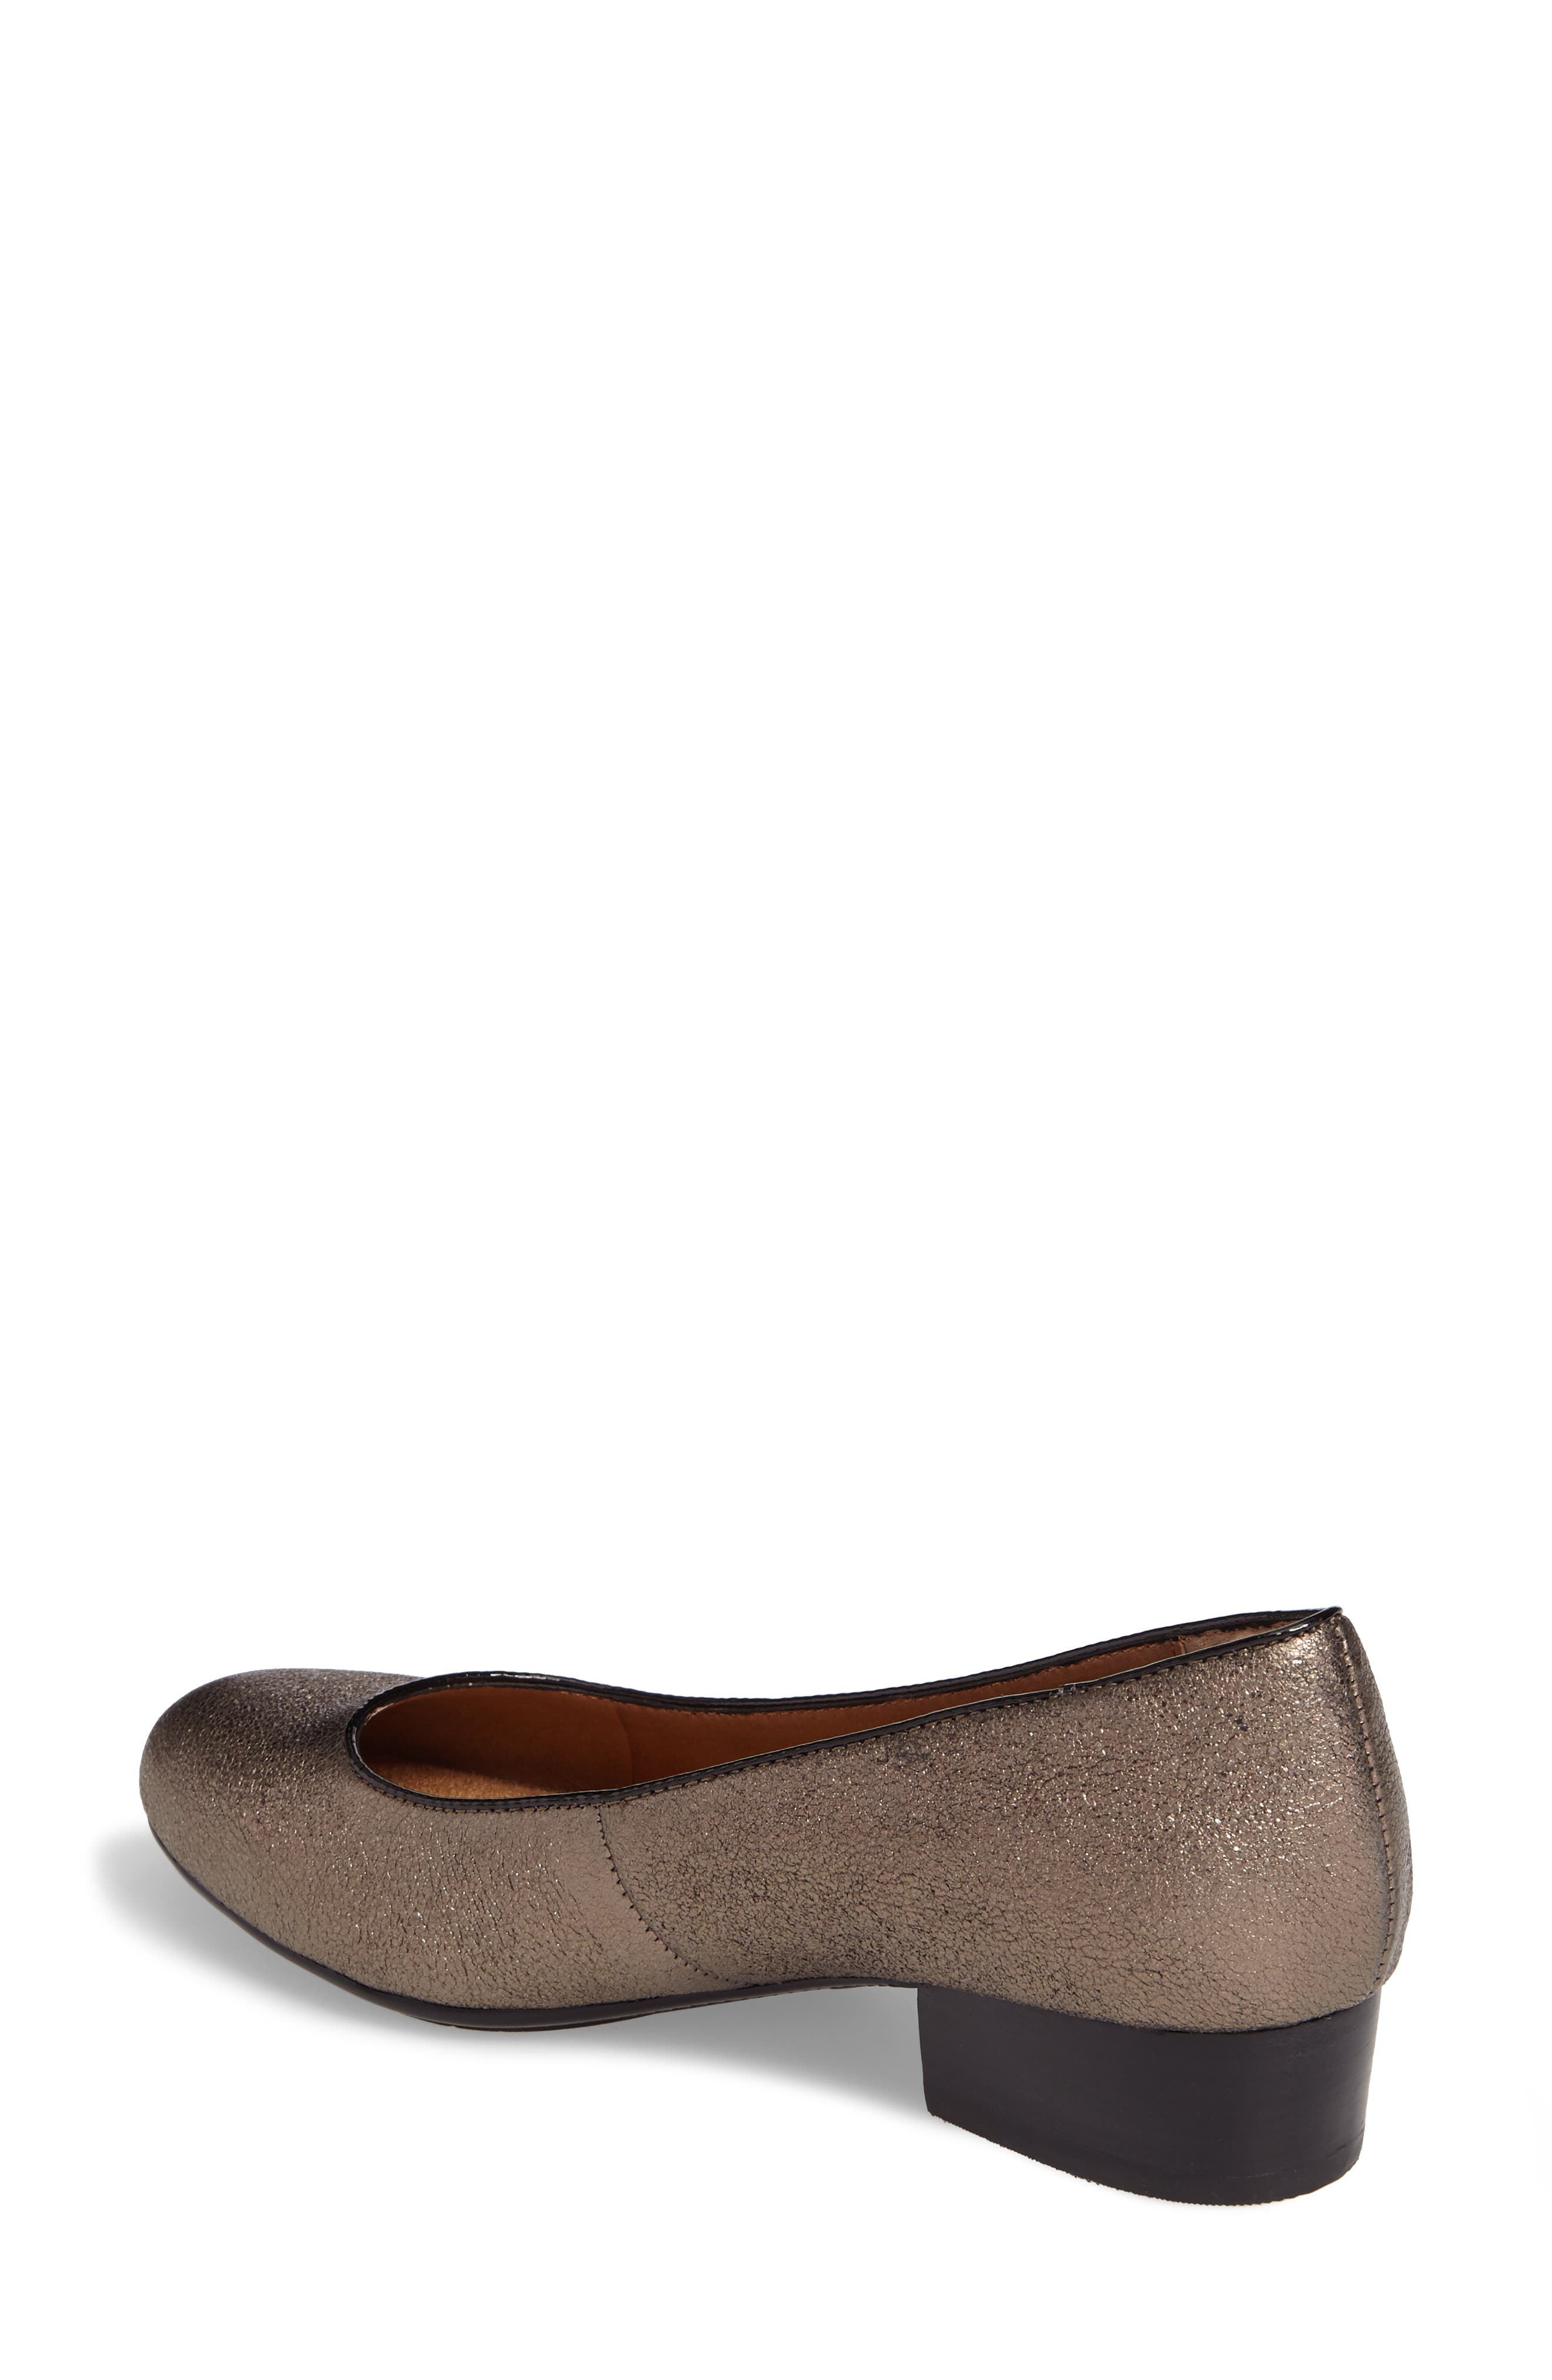 Belicia Pump,                             Alternate thumbnail 2, color,                             COPPER/ BLACK LEATHER